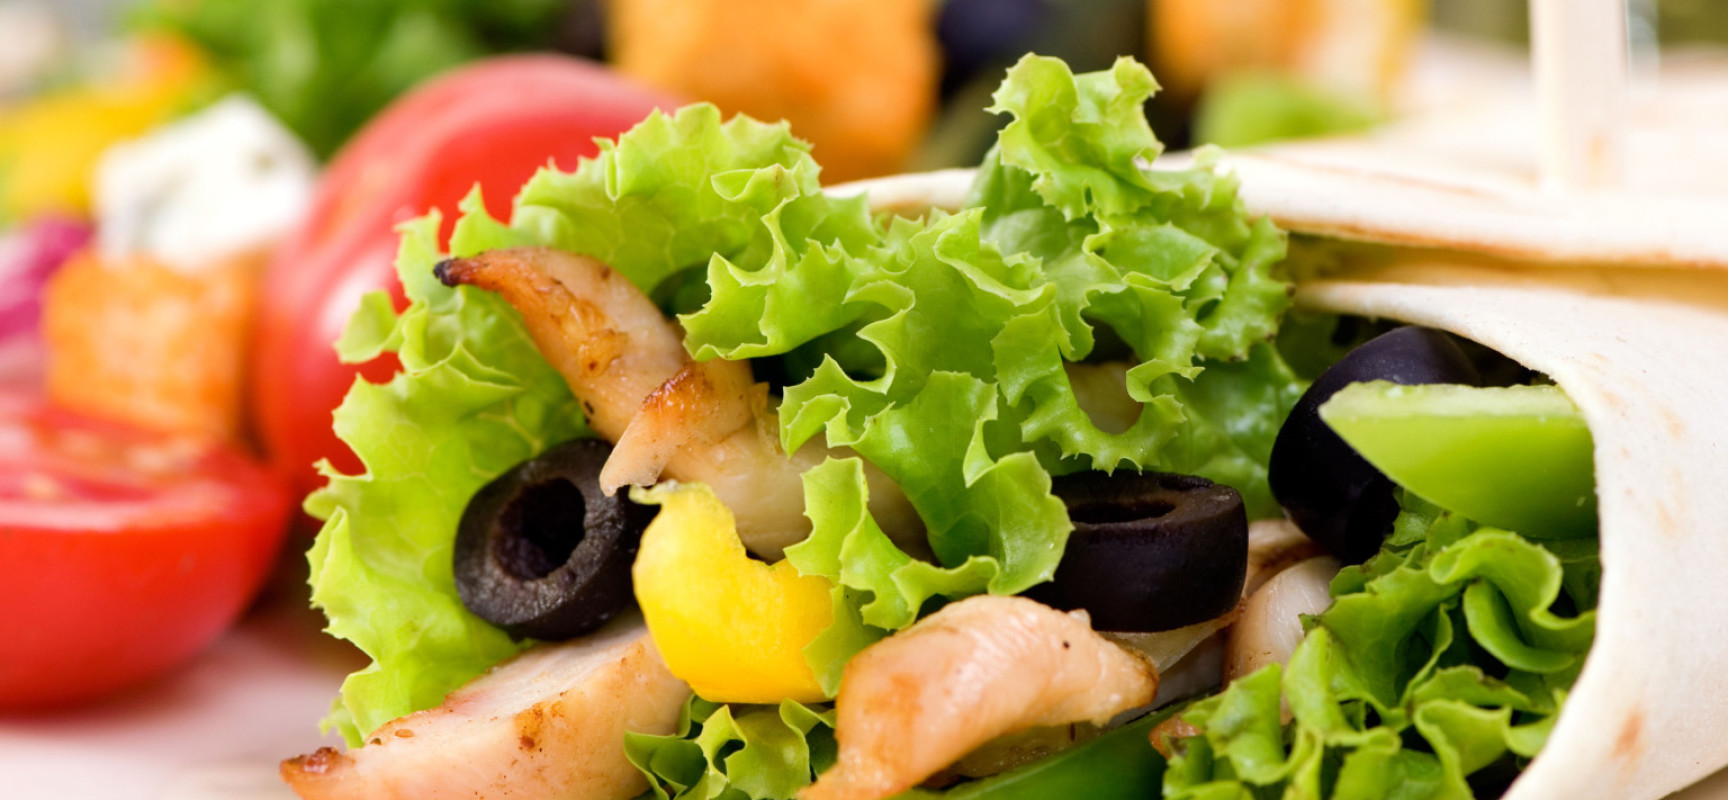 Fast and Smart: How to Pick Healthier Fast Food Options